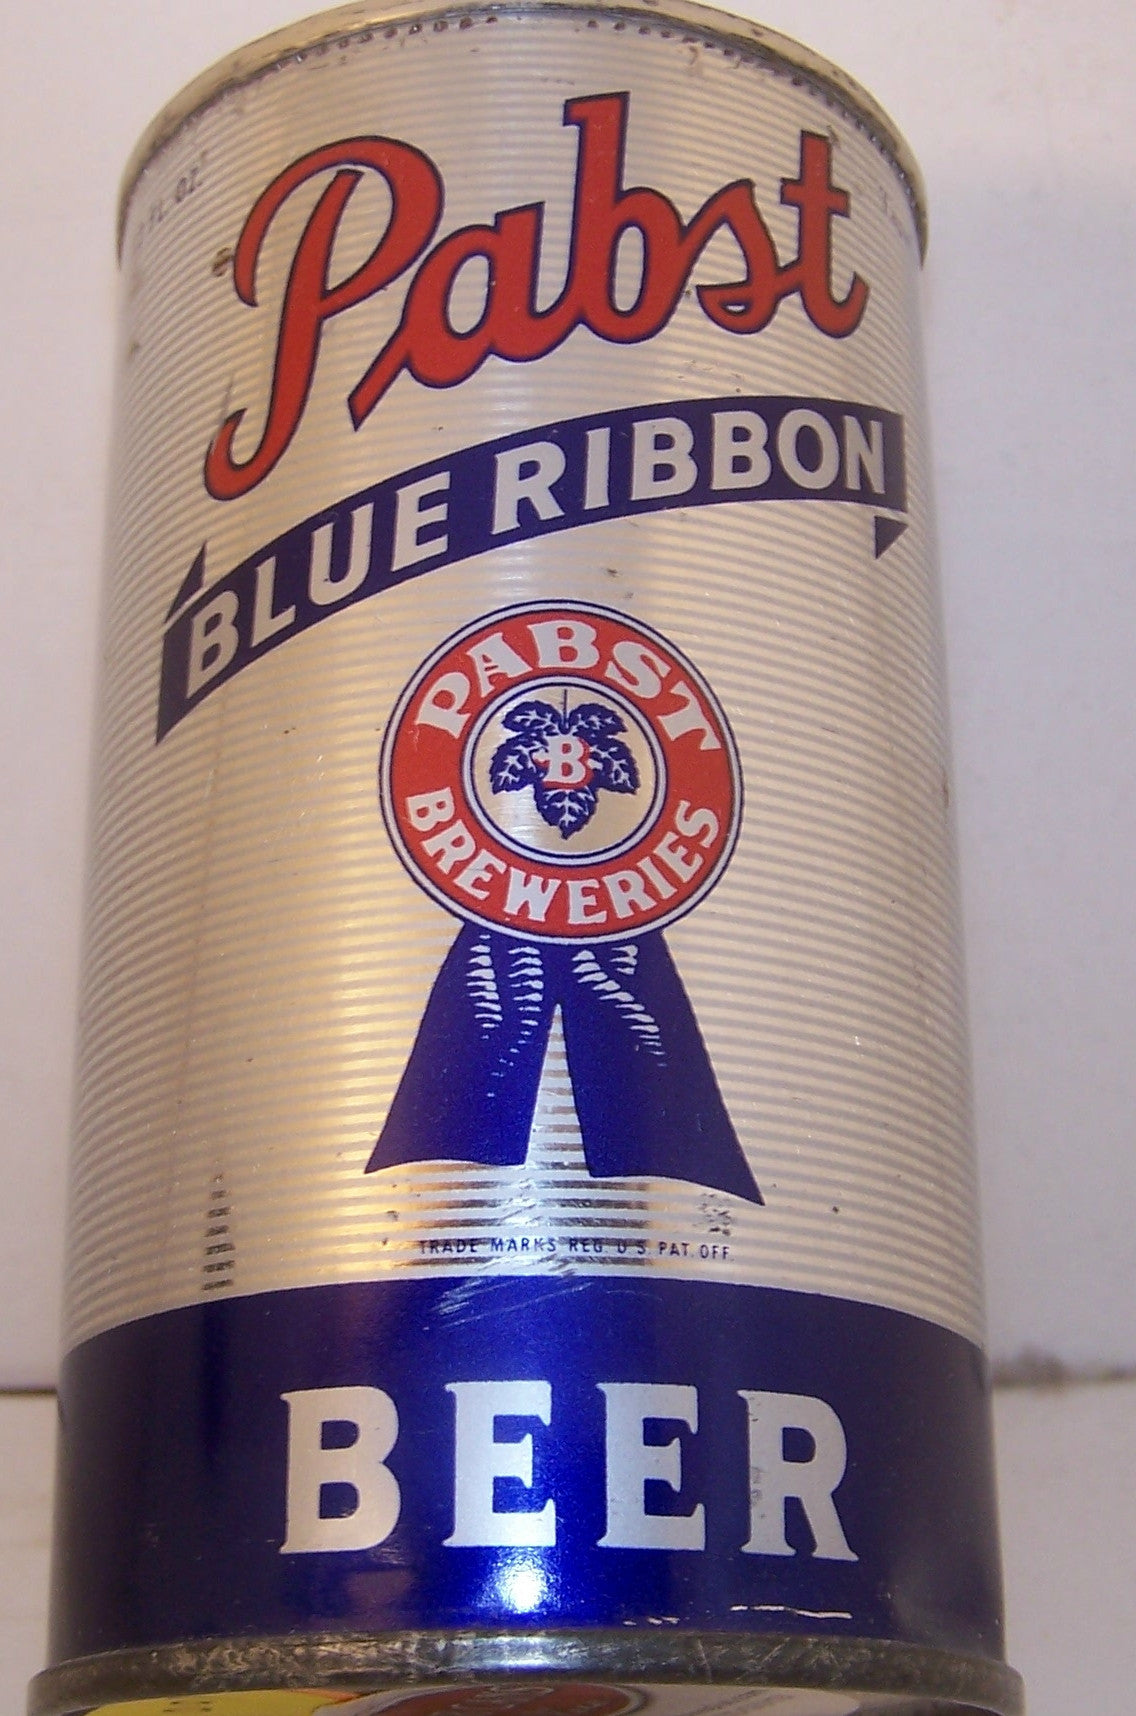 Pabst Blue Ribbon Beer, USBC 110-6 Grade 1/1-  Sold 12/5/14